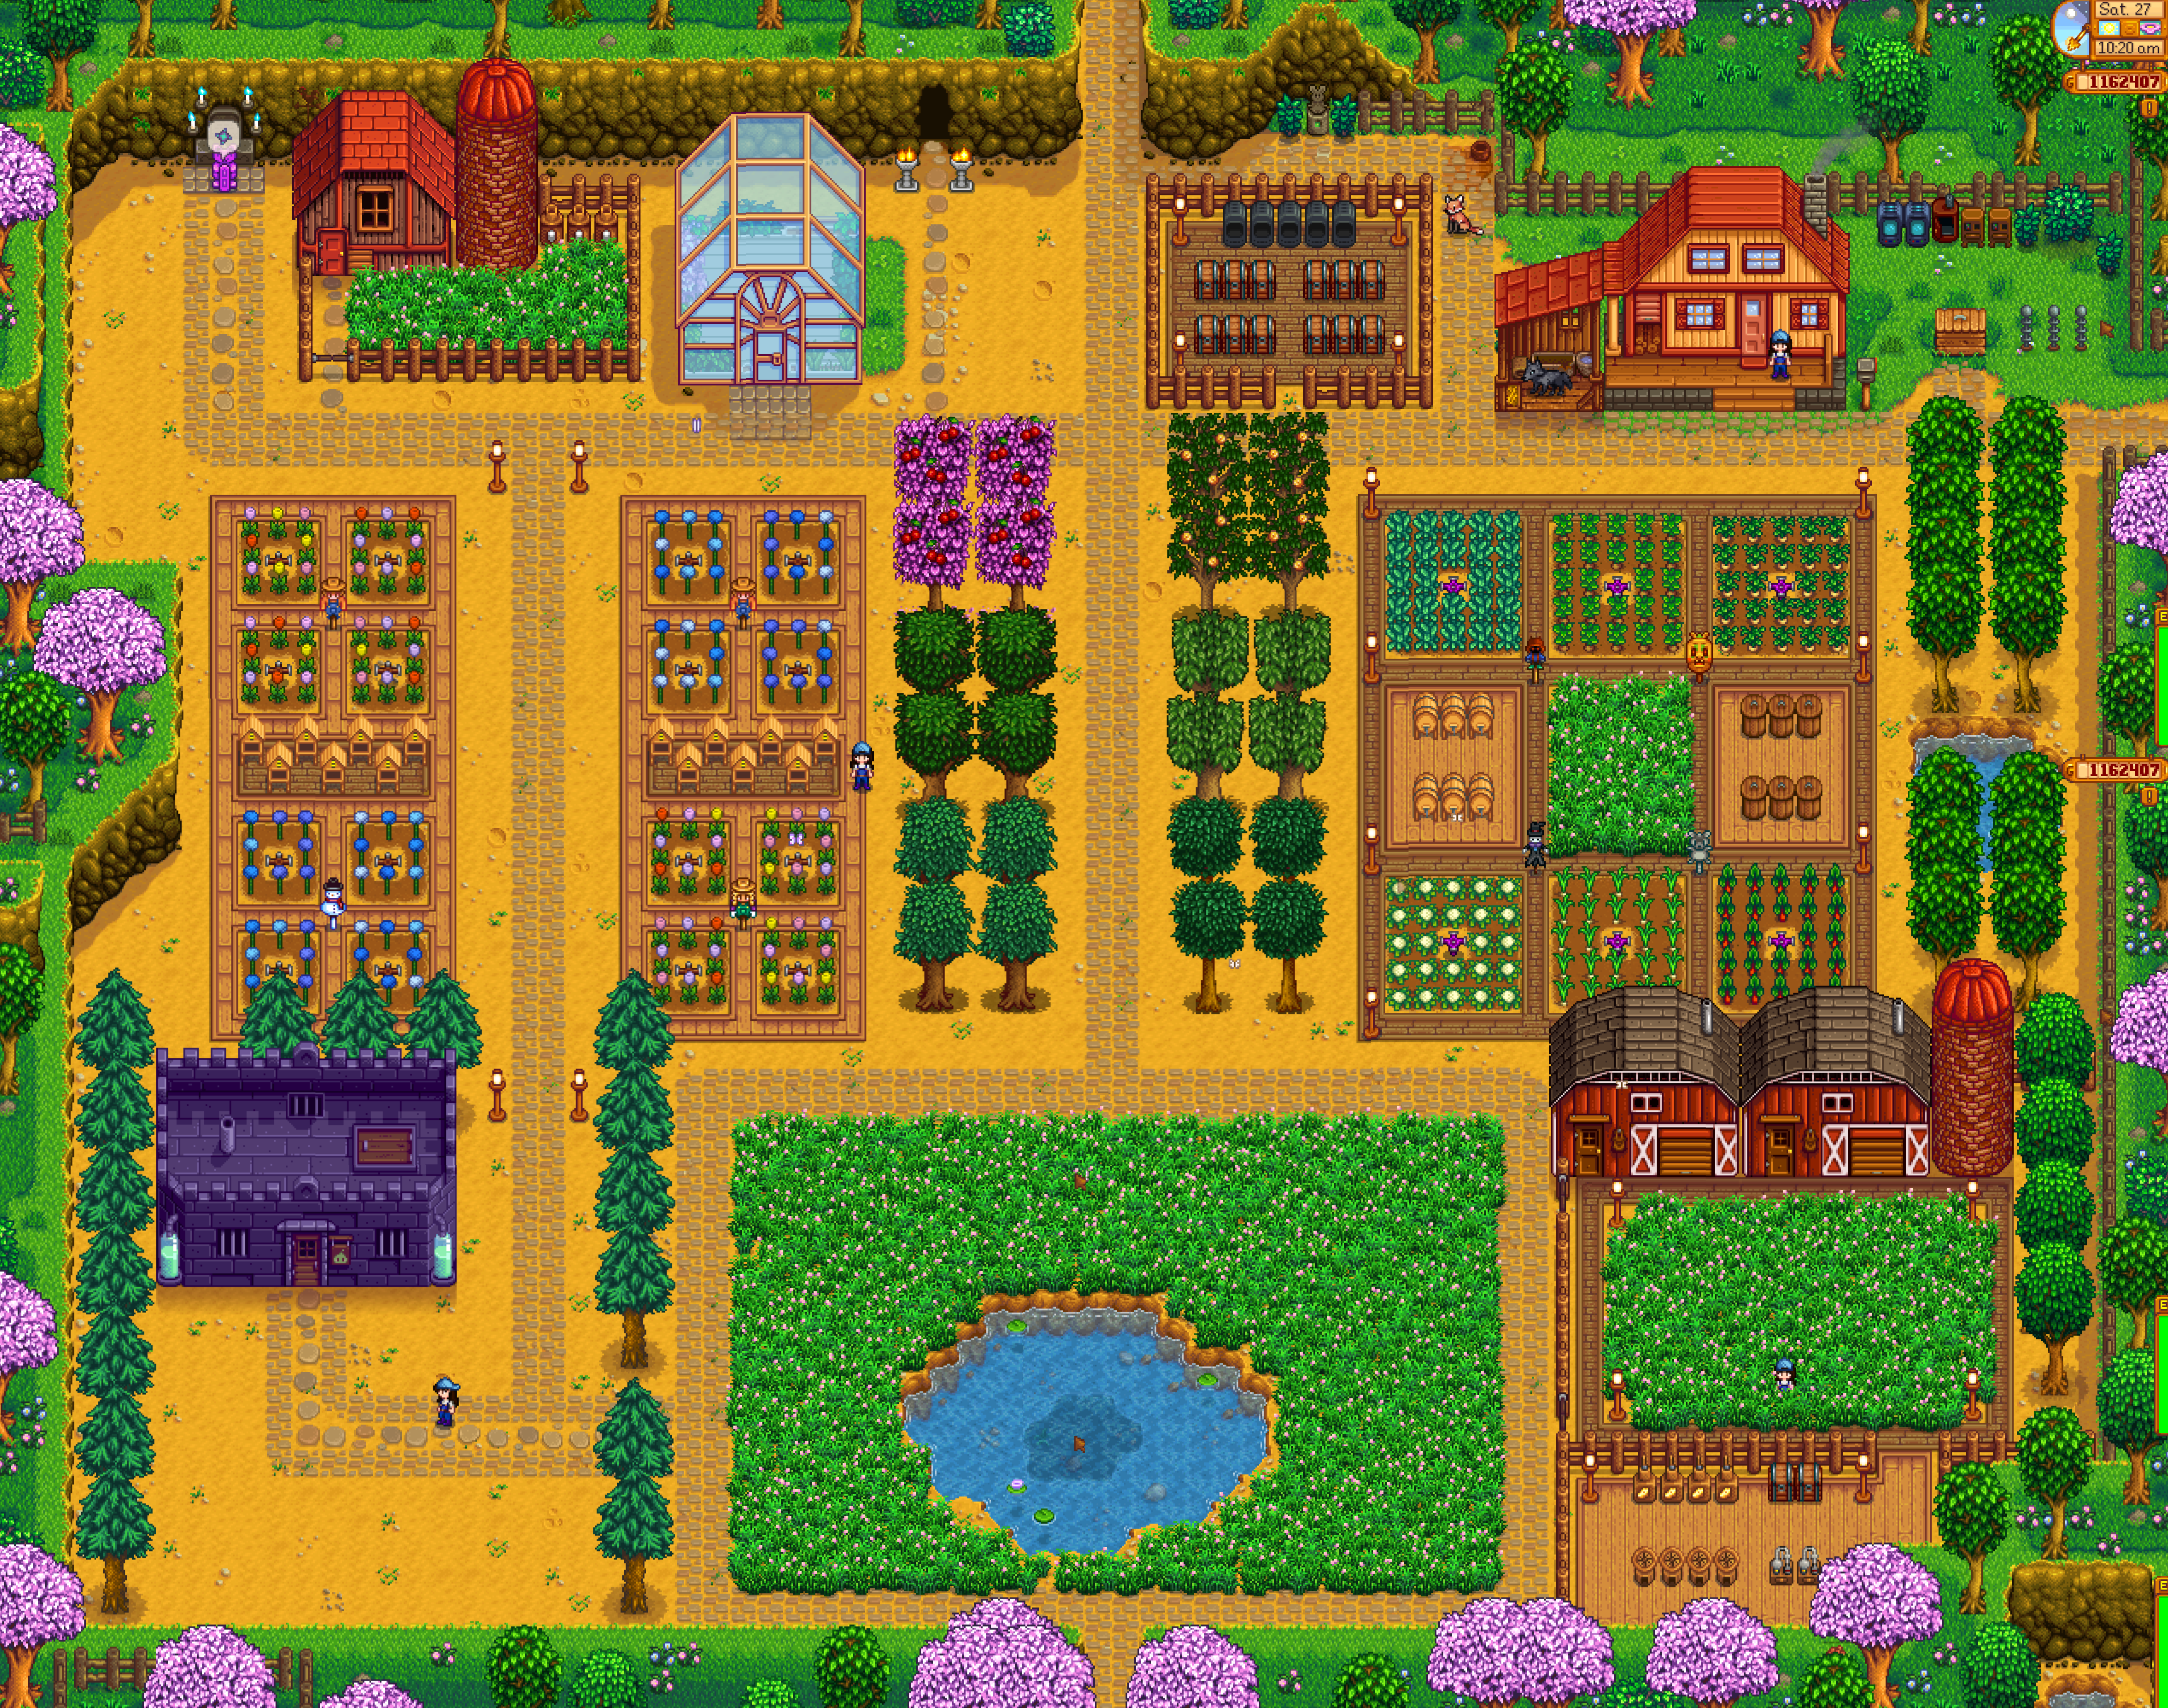 Farming Guide Farm Layout Stardew Valley Farms Farming Guide